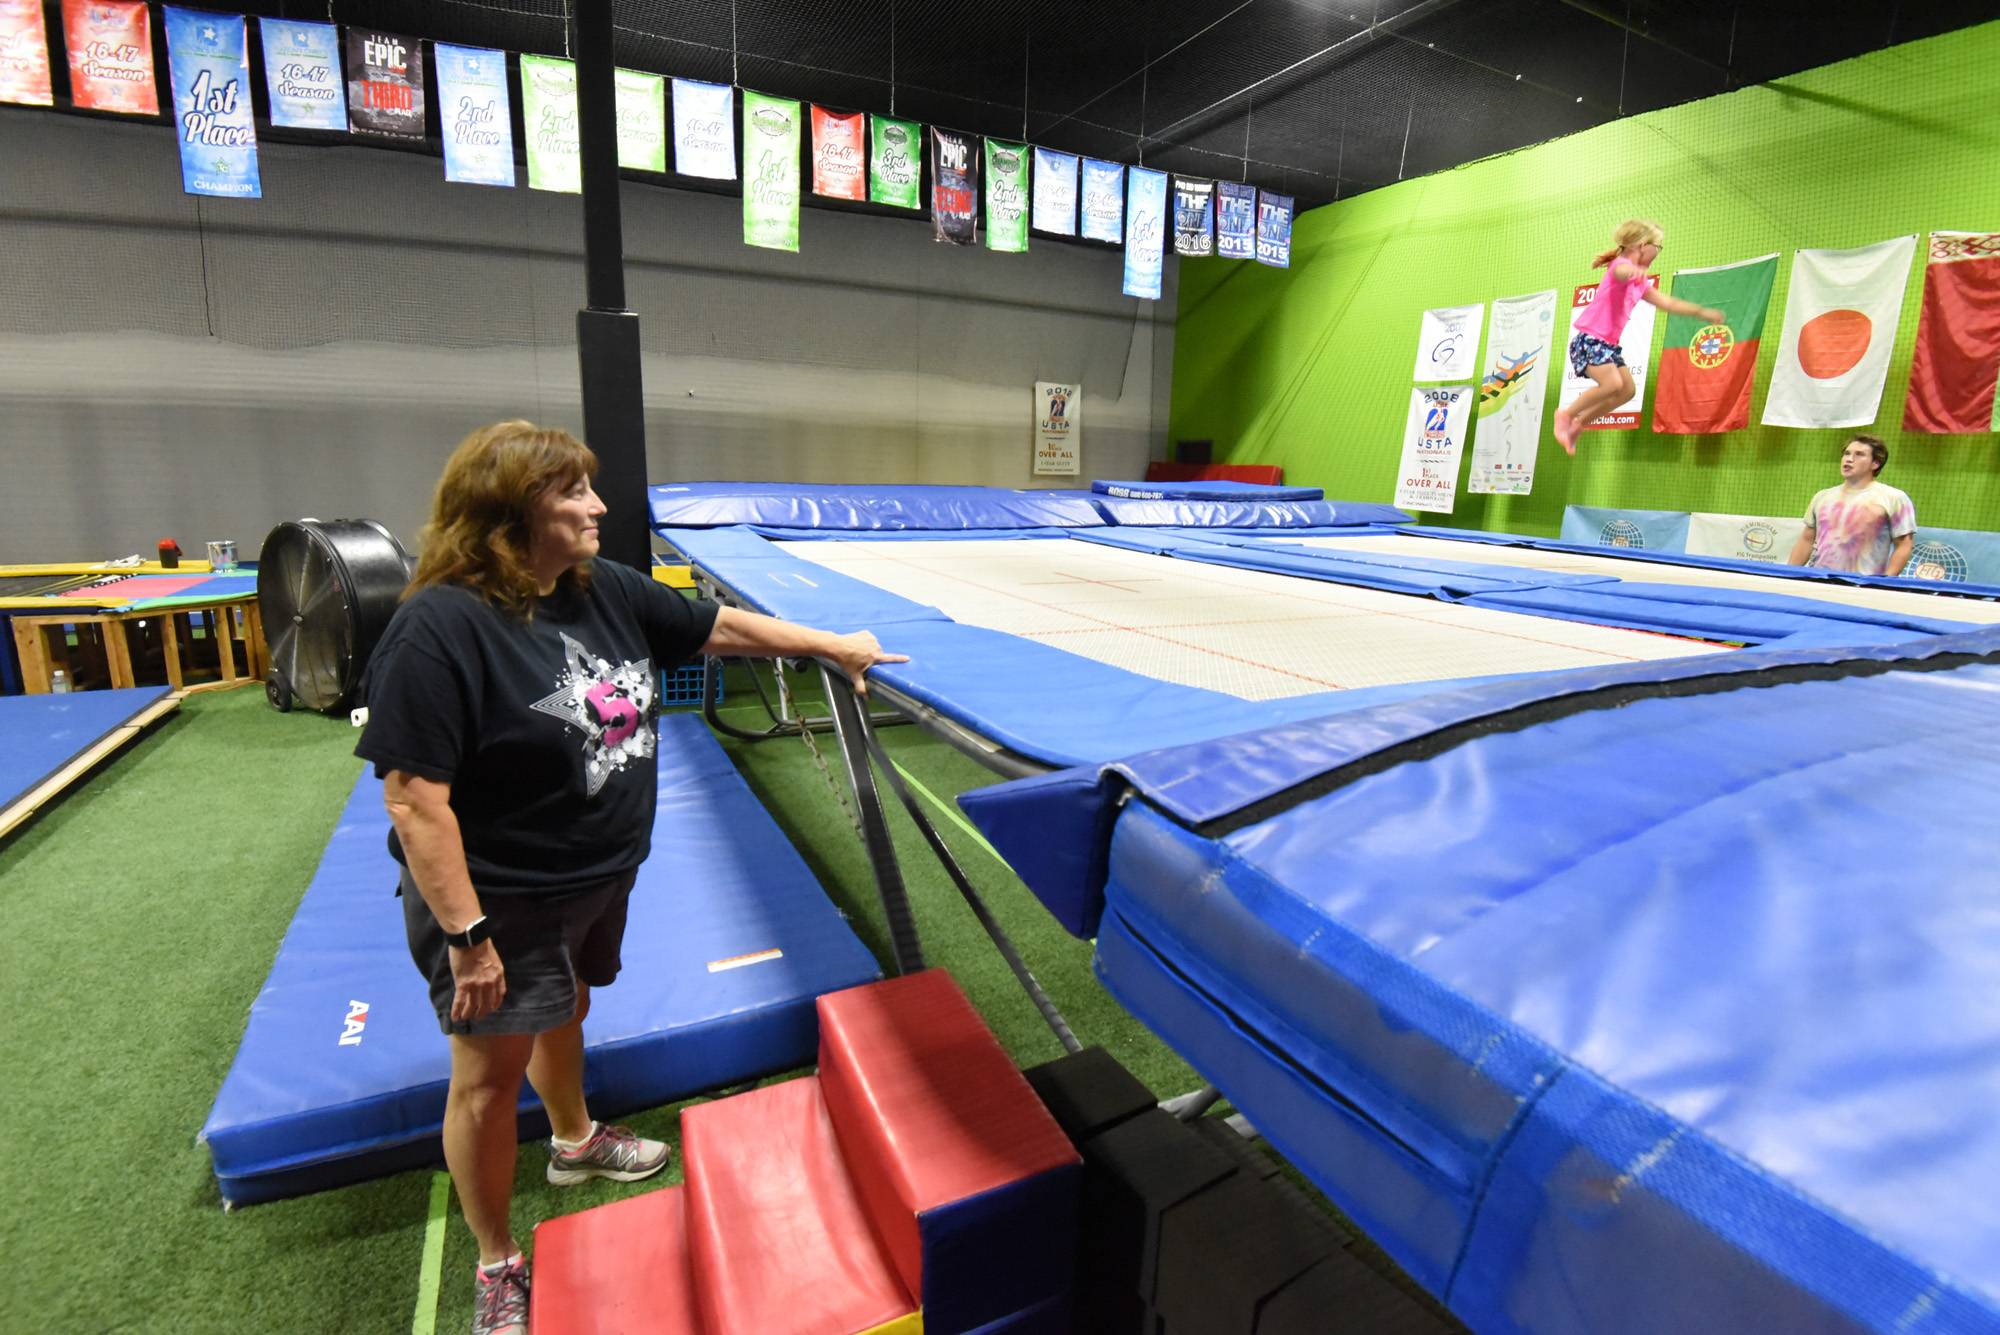 Paulette Konstantaras, owner of 5 Star Elite, watches instructor Josh Coles work with young gymnasts on a trampoline at Lifezone 360 in West Dundee.